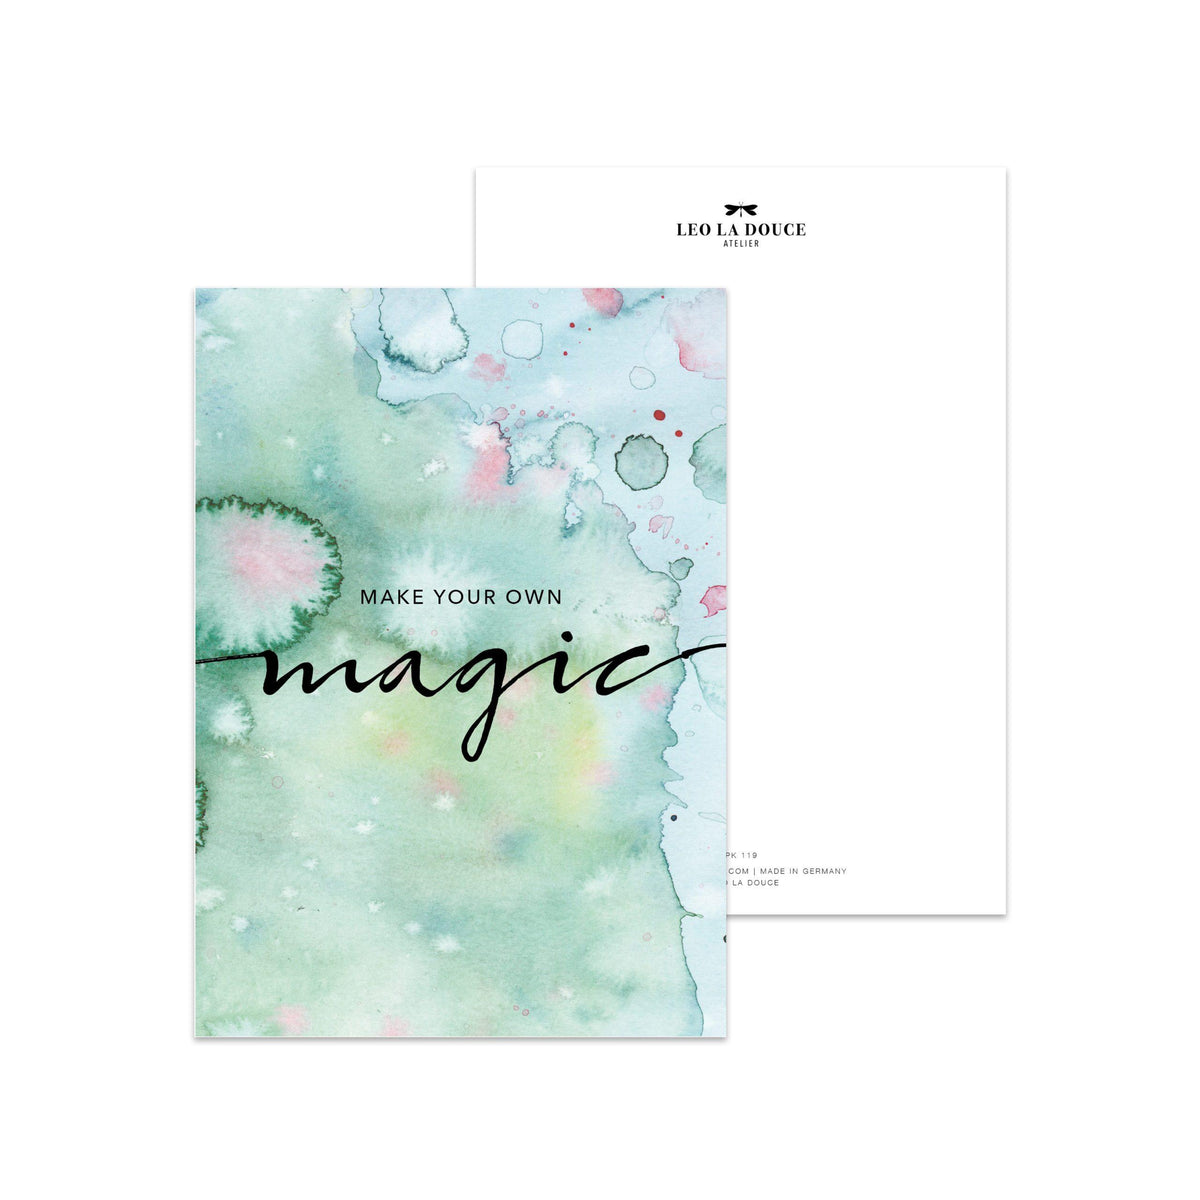 Postkarte - MAKE YOUR OWN MAGIC Postkarte Leo la Douce